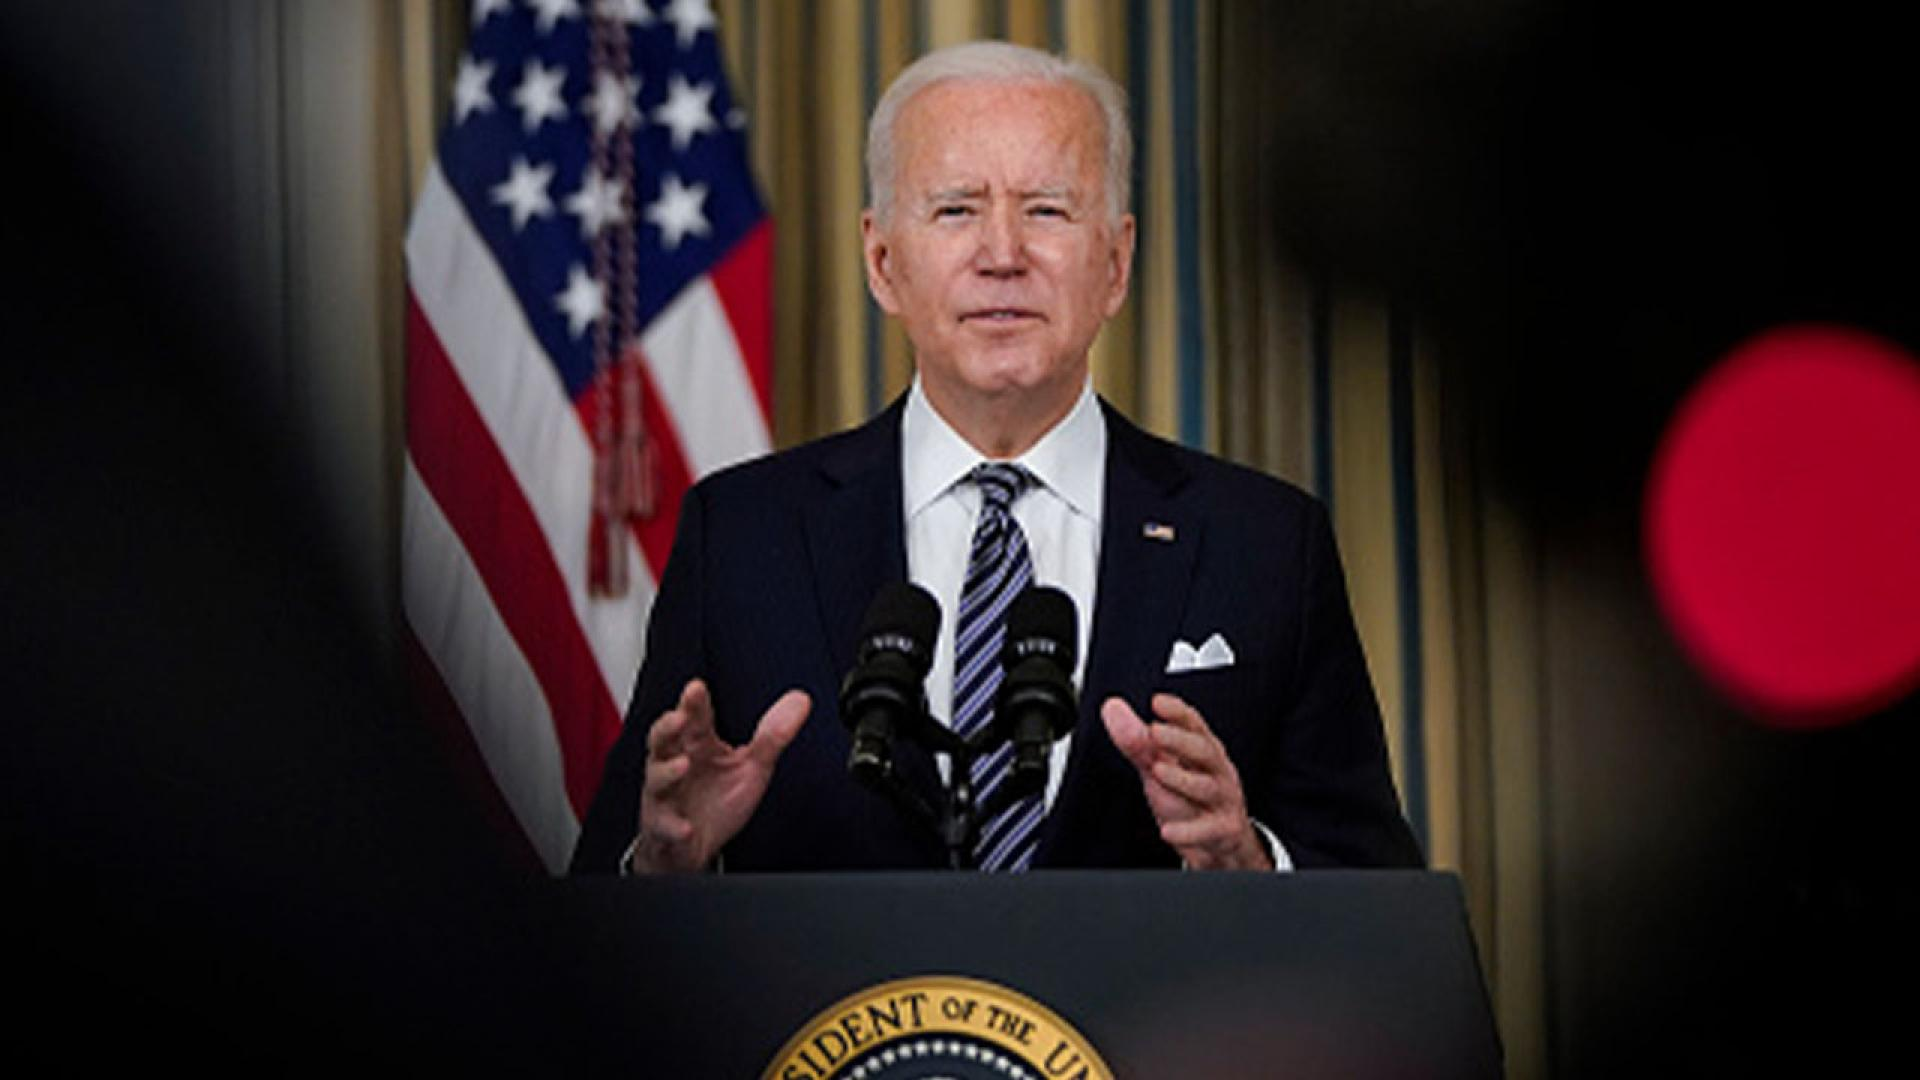 President Biden Delivers Remarks On The Implementation Of Newly Passed American Rescue Plan